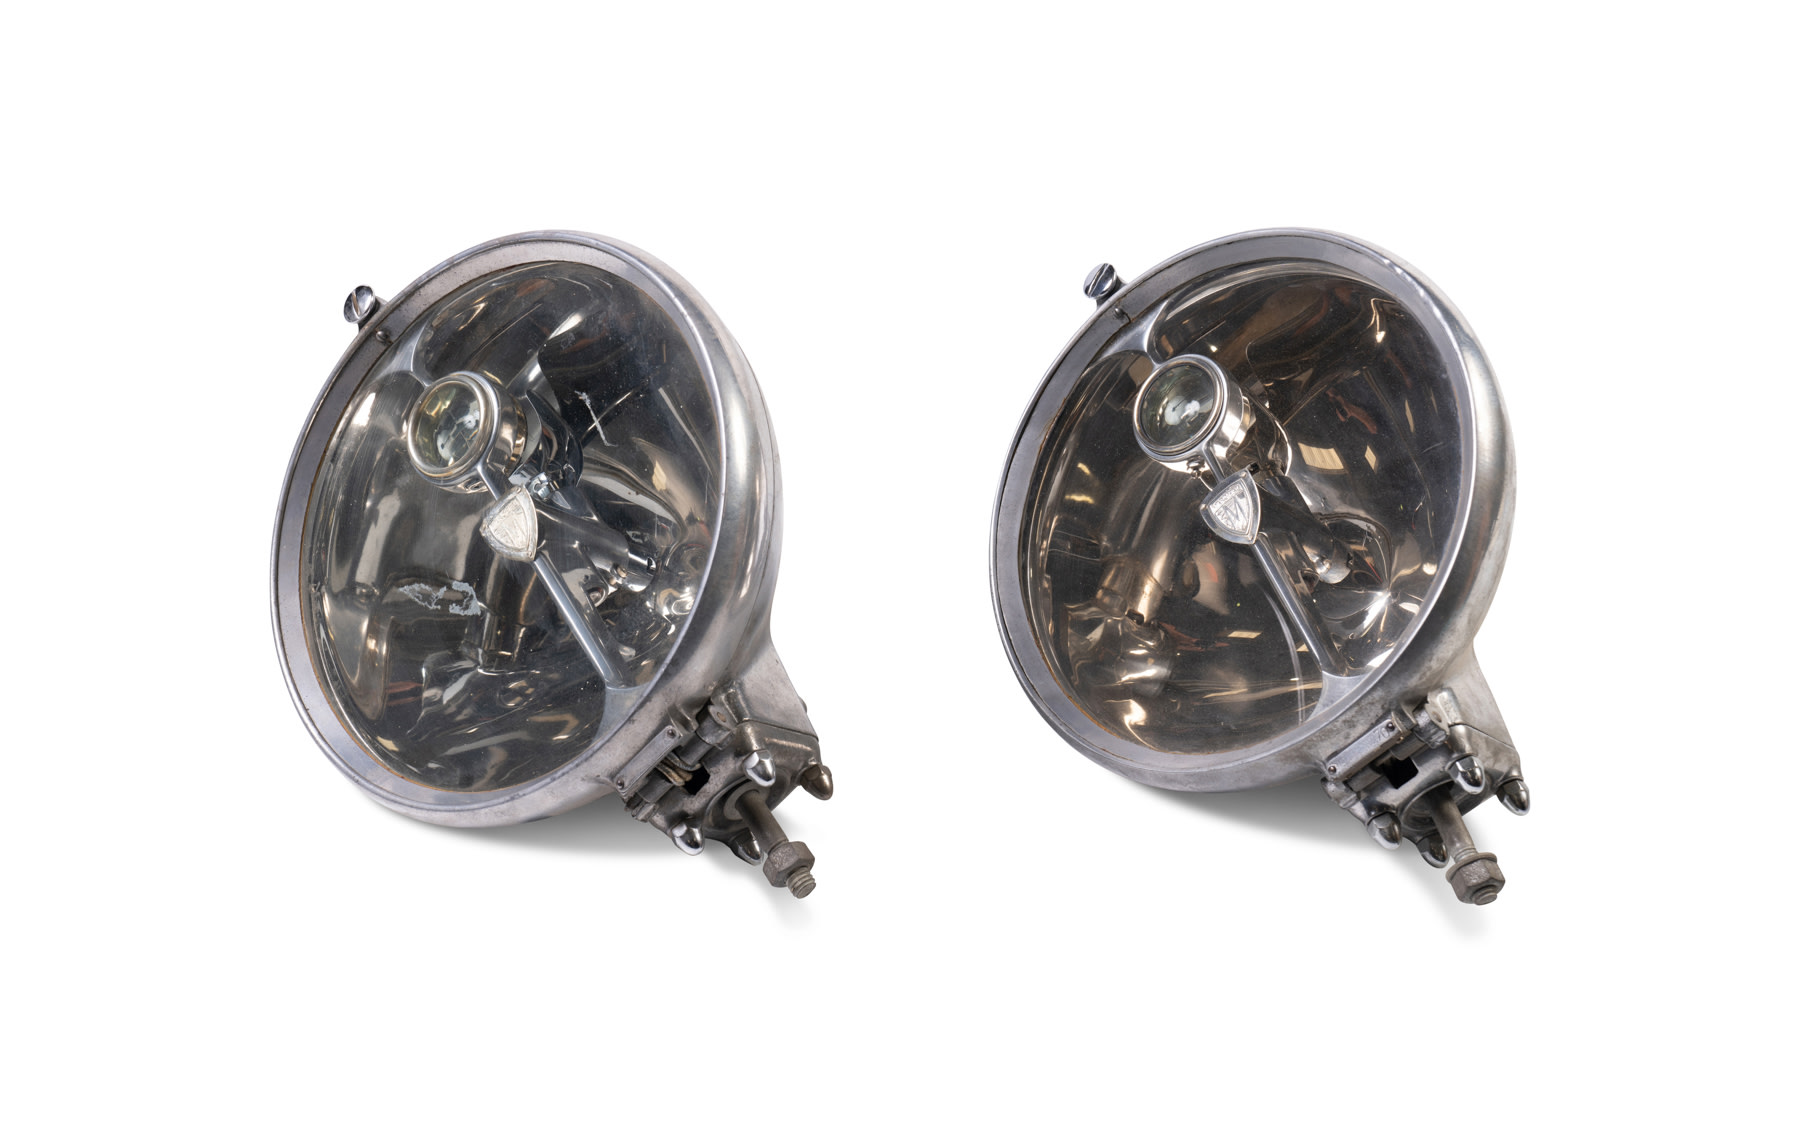 A Pair of Marchal Headlamps